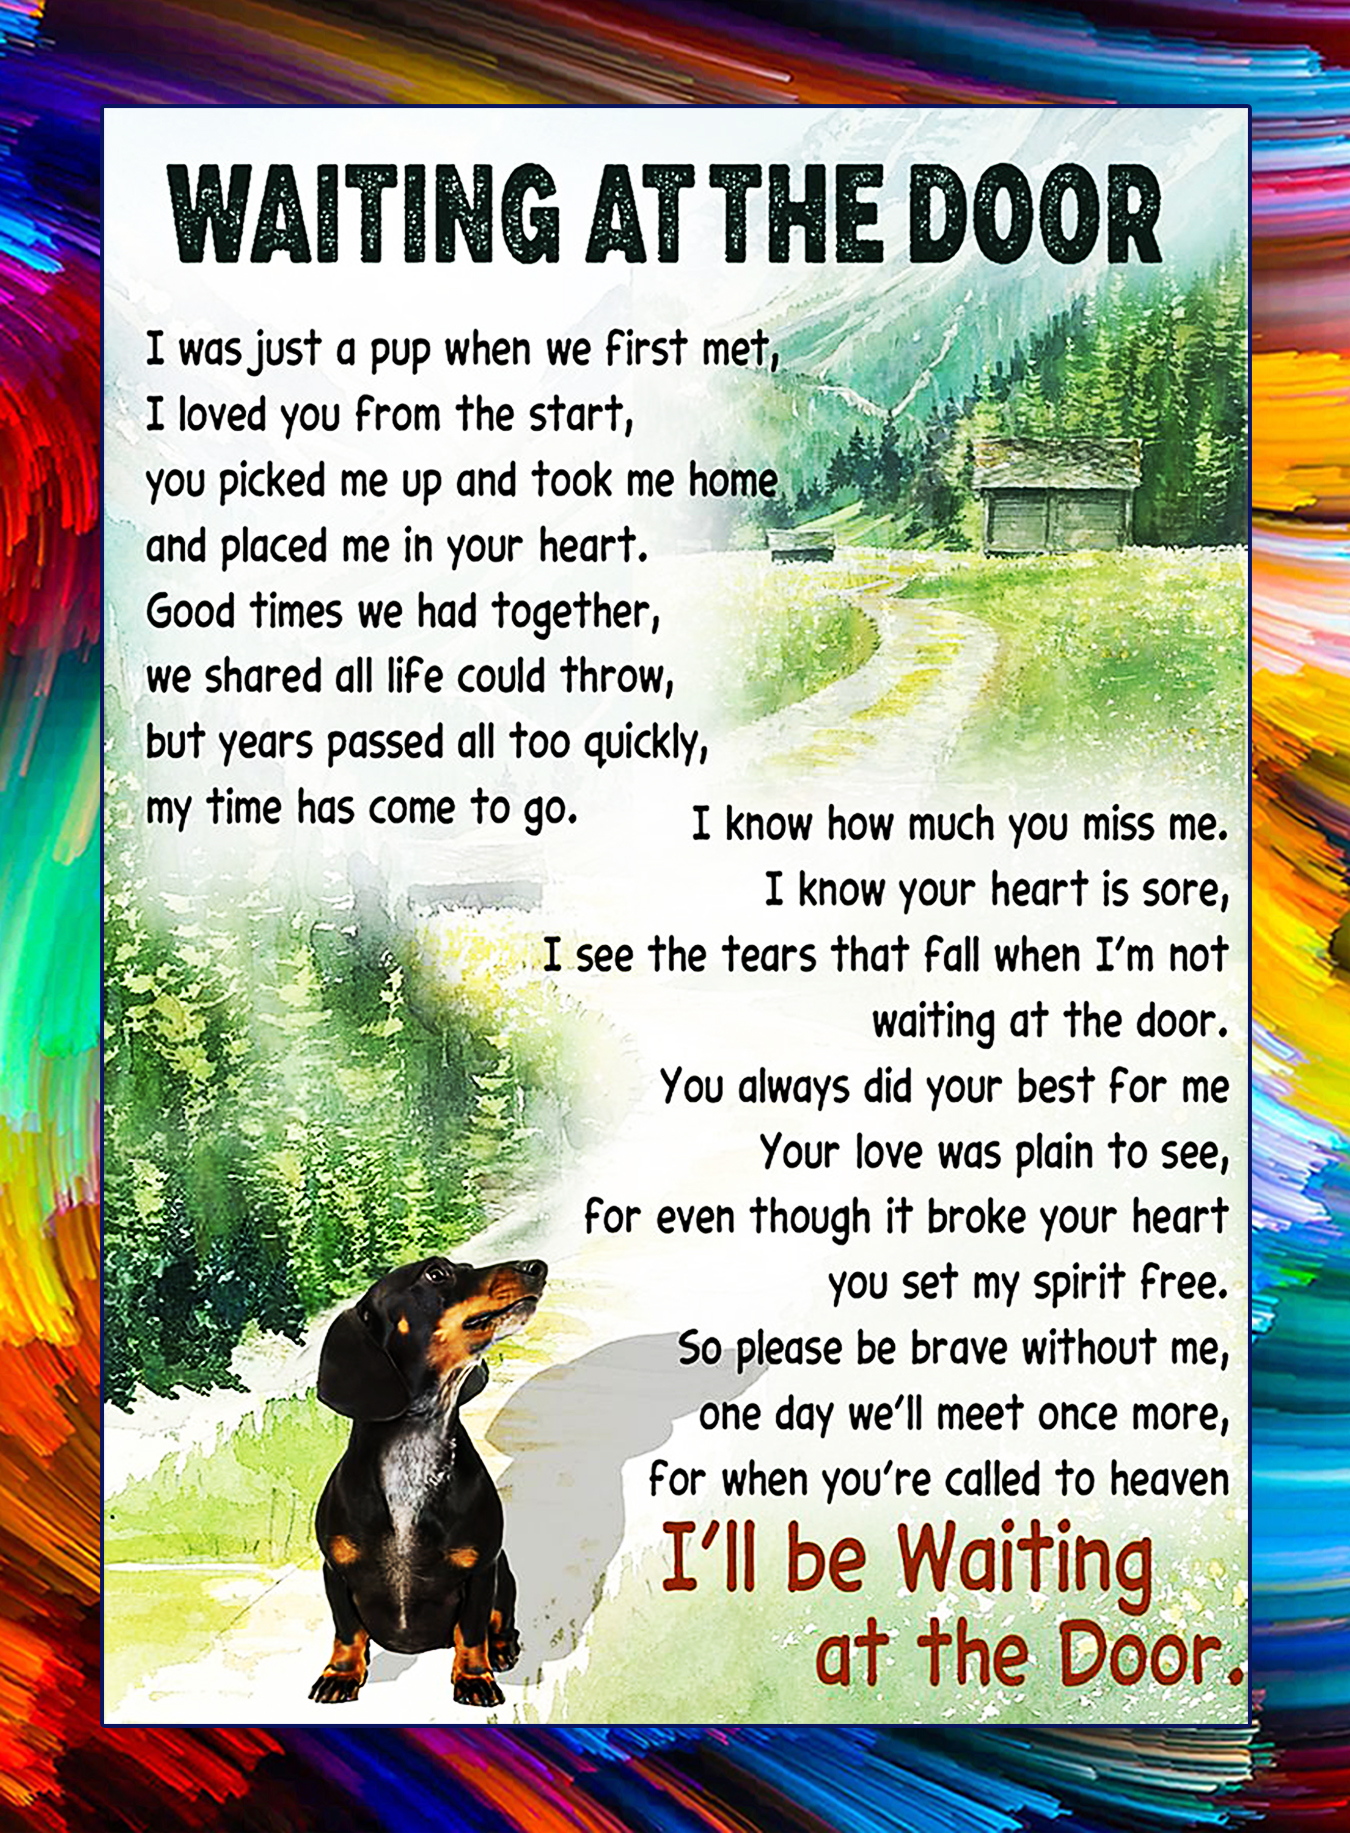 Dachshund waiting at the door poster - A2